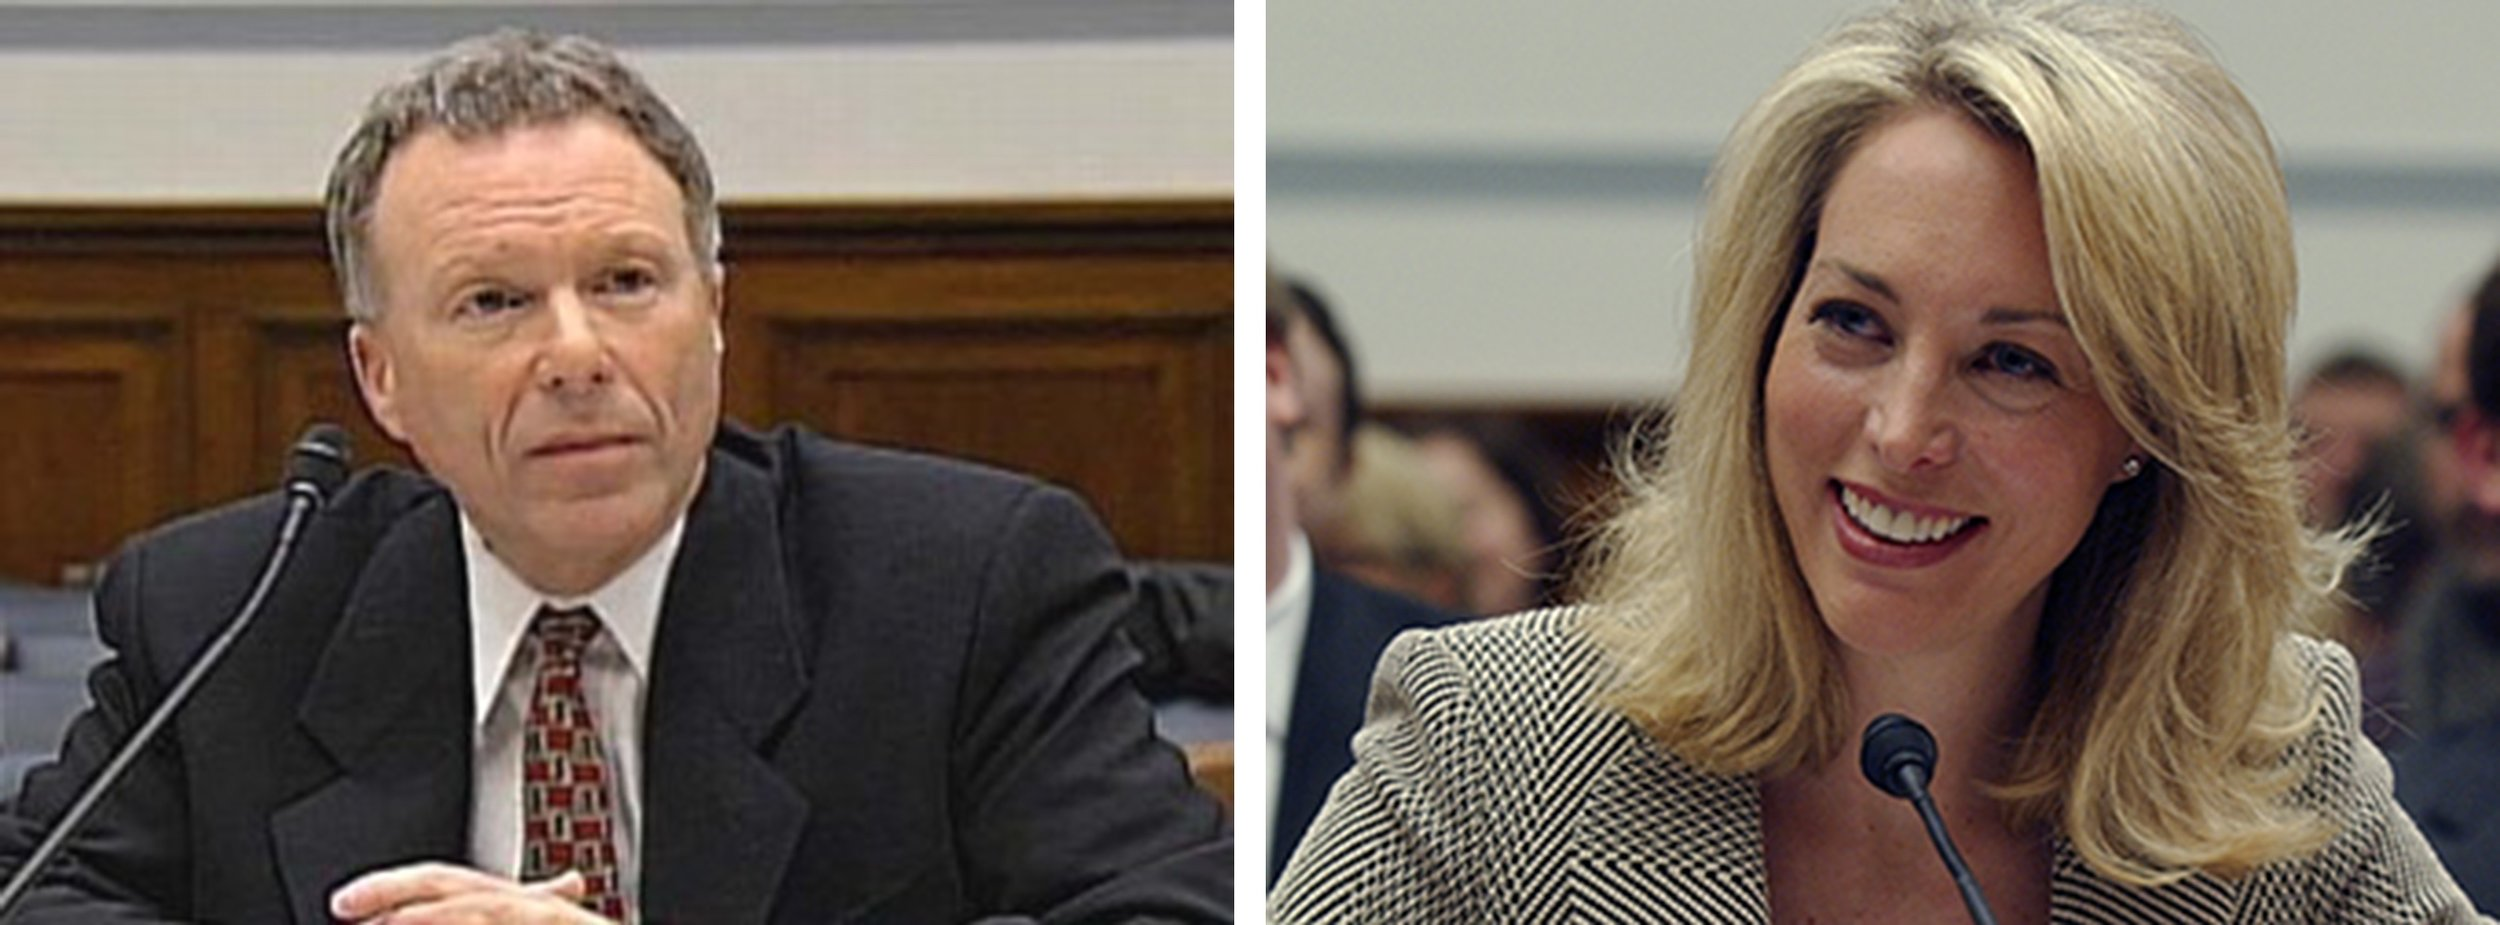 "Lewis ""Scooter"" Libby, Vice President Dick Cheney's assistant, took the hit for the Bush Administration's outing of undercover CIA agent Valerie Plame (right), apparently an act of vengeance for her diplomat husband's failure to find yellow-cake uranium in Africa that would justify the war against Saddam Hussein in Iraq"